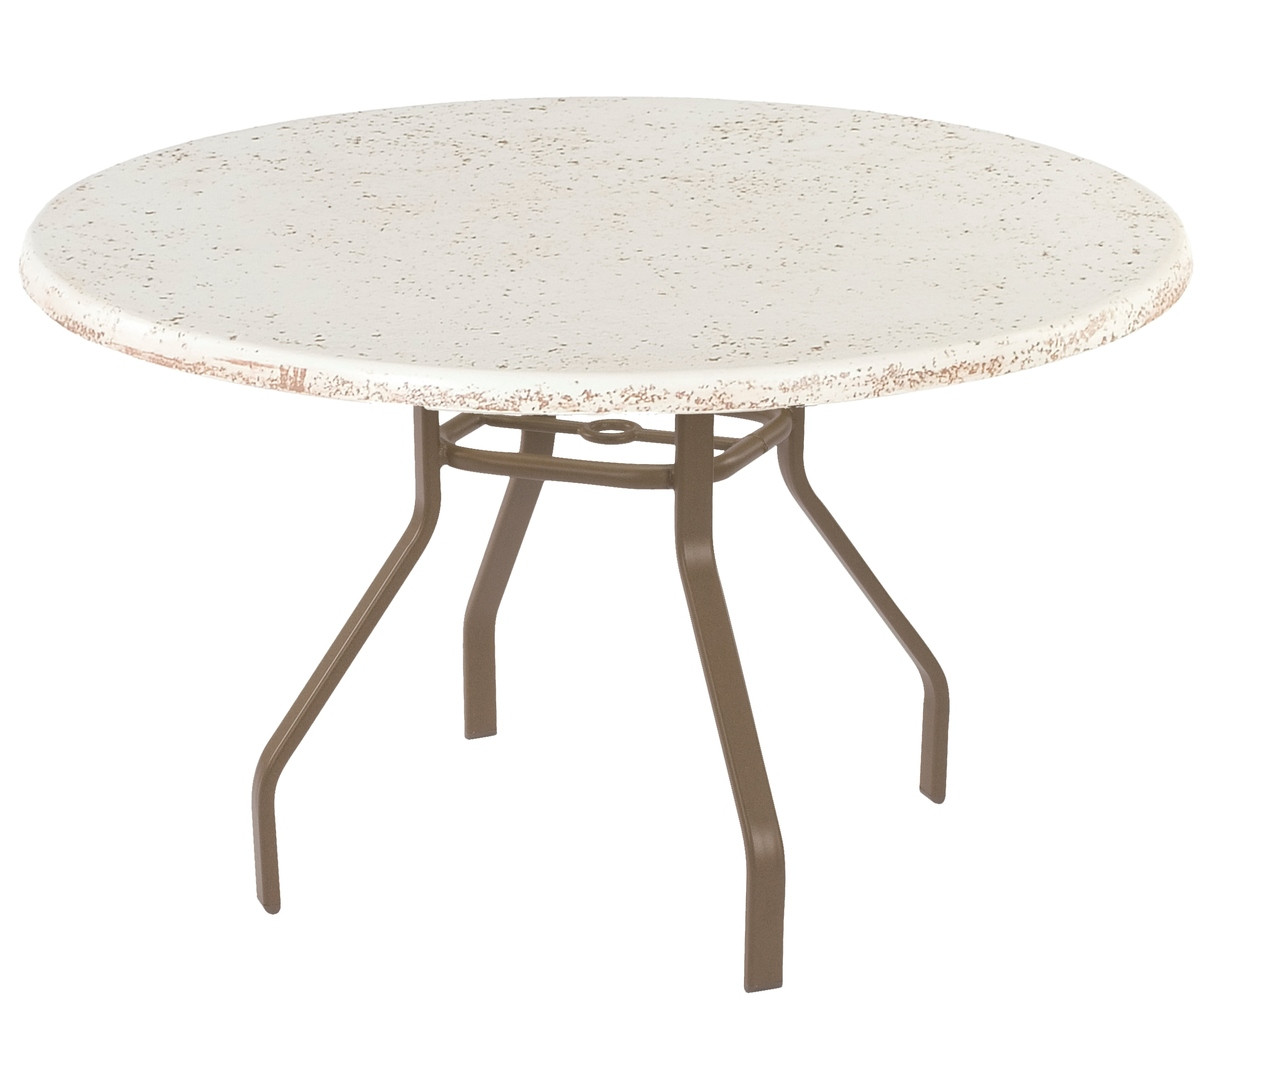 Resort contract faux stone round dining table resort furniture and chairs